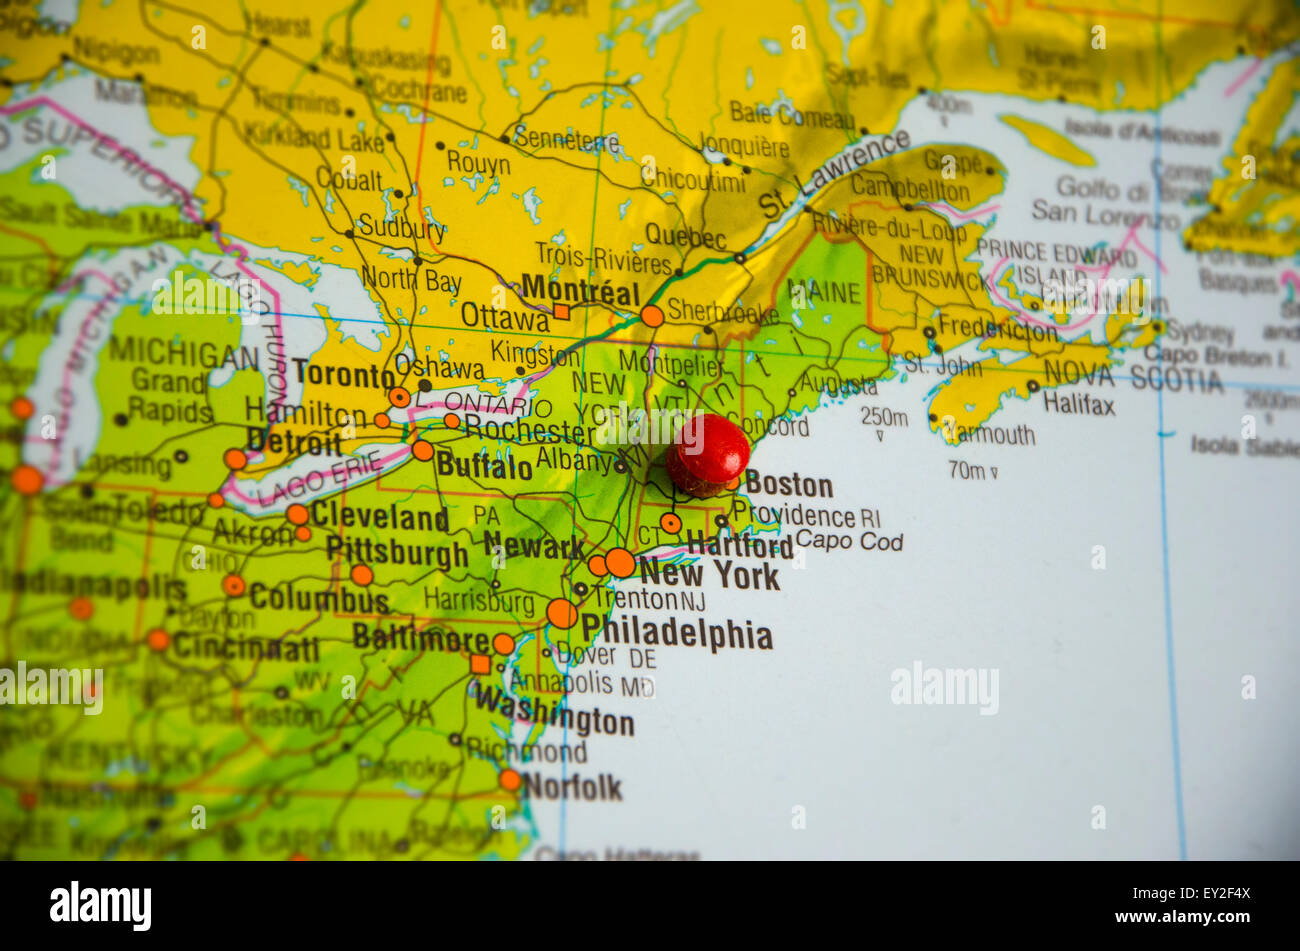 Cartina Usa East Coast.Placeholder On The City Of Boston In The Map Of The United States Stock Photo Alamy